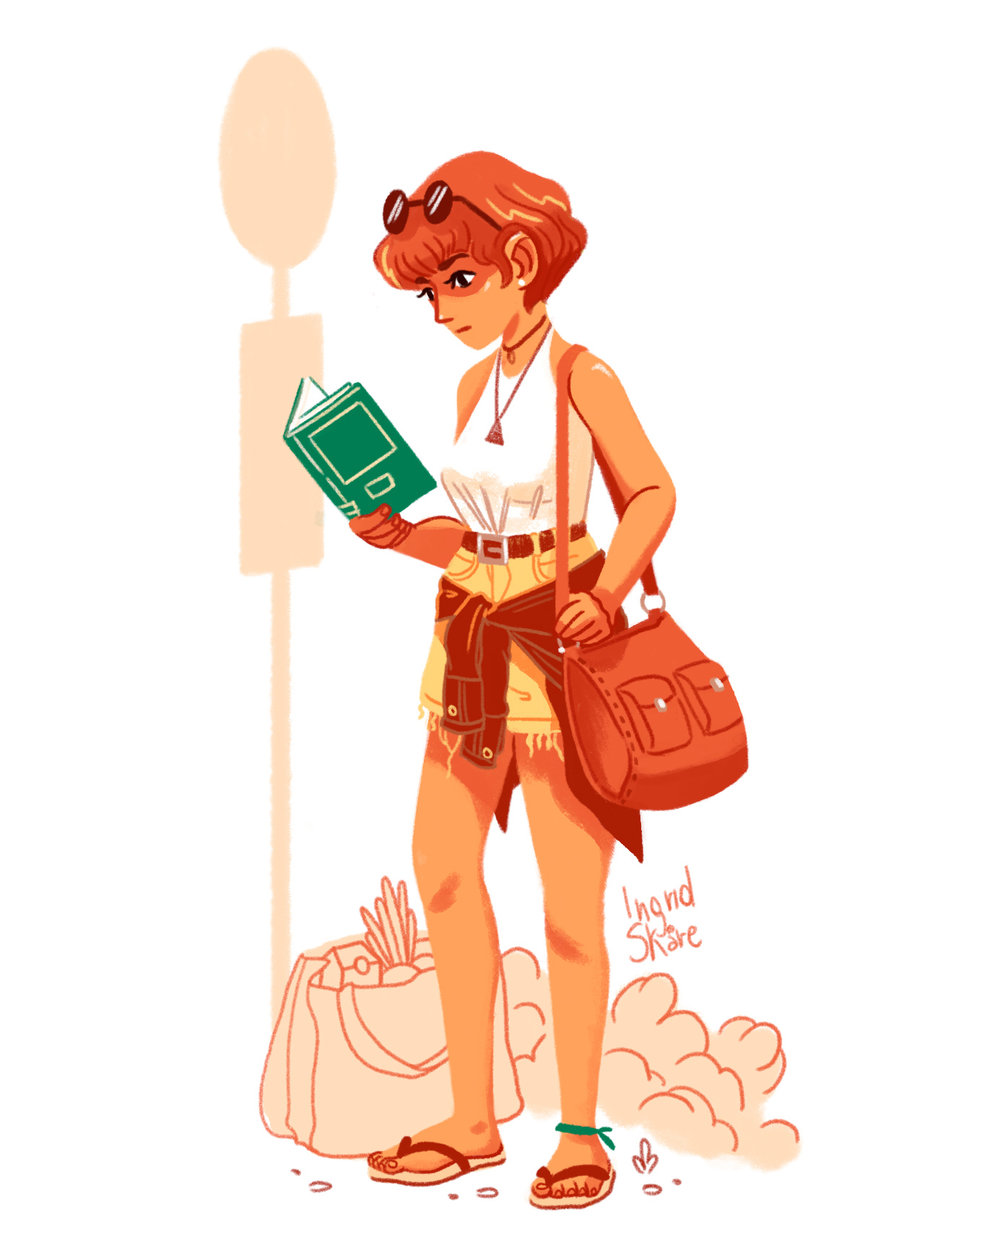 bus-stop-girl-illustration.jpg